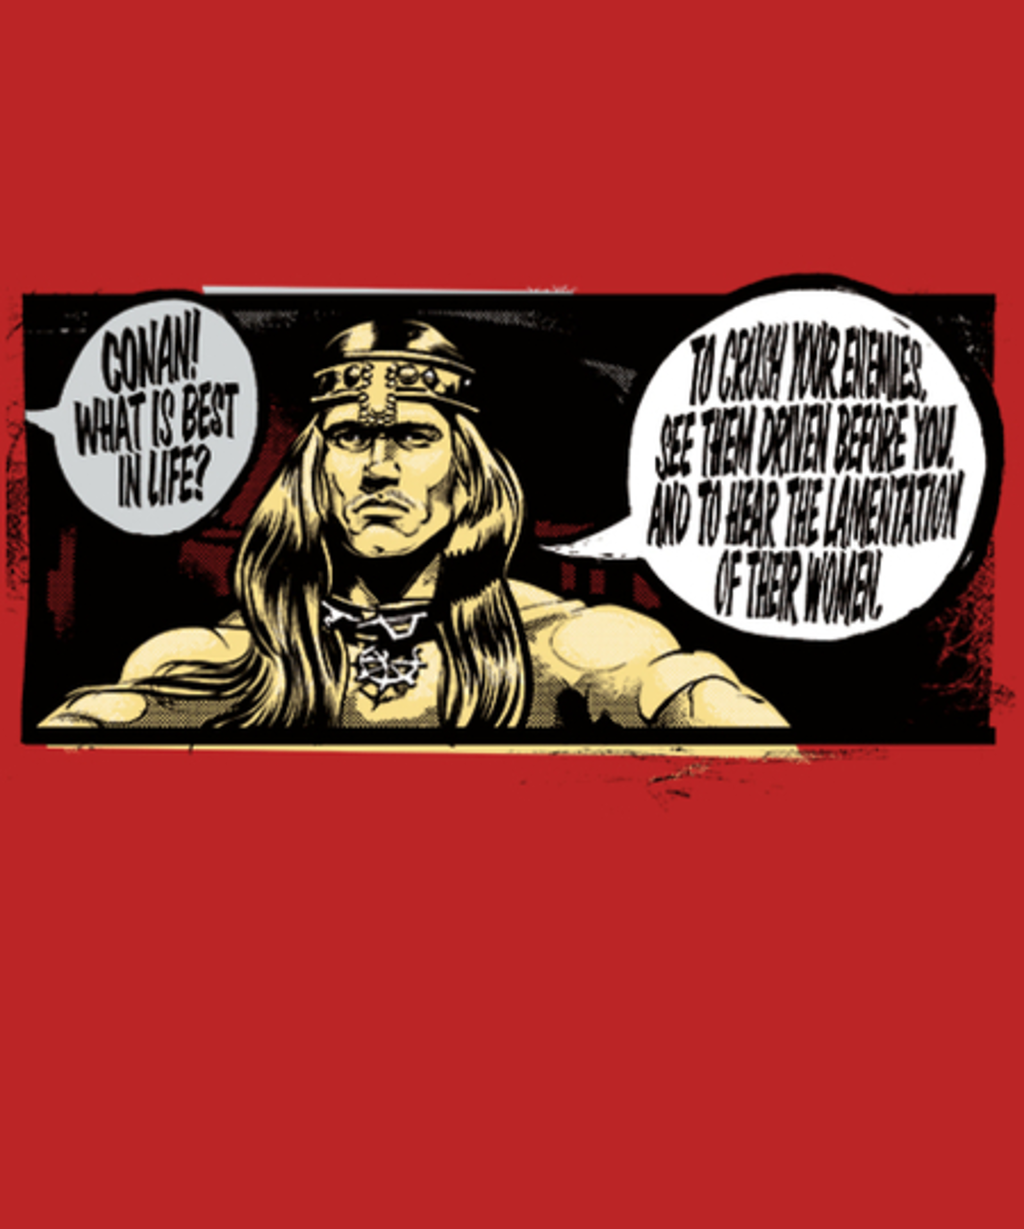 Qwertee: What Is Best In Life?